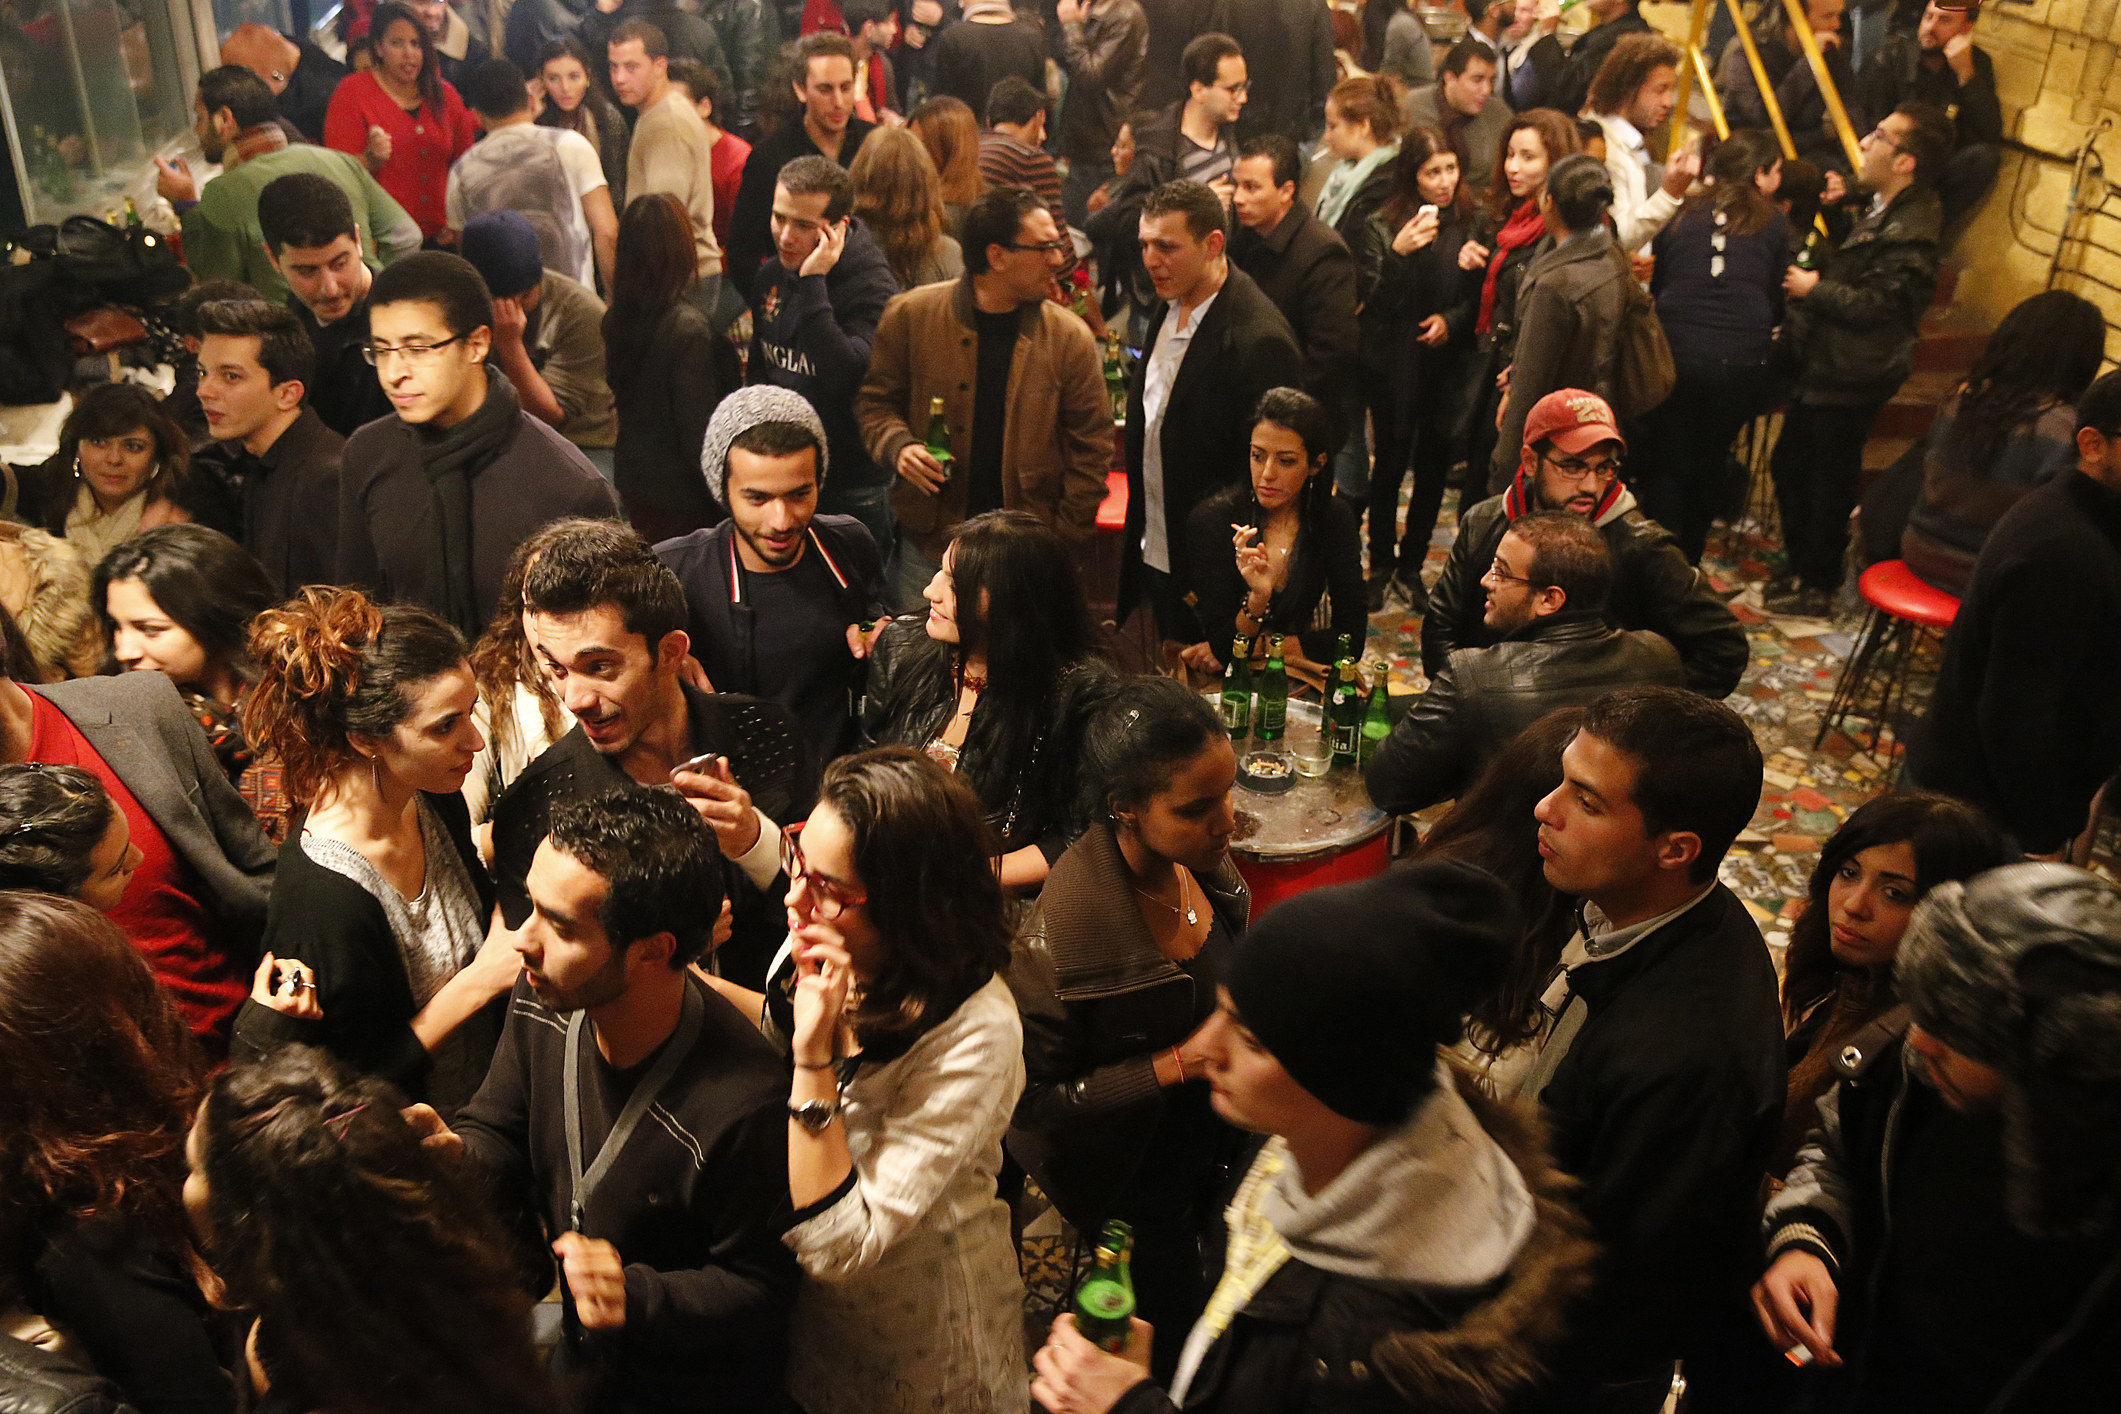 A crowd of people at a party